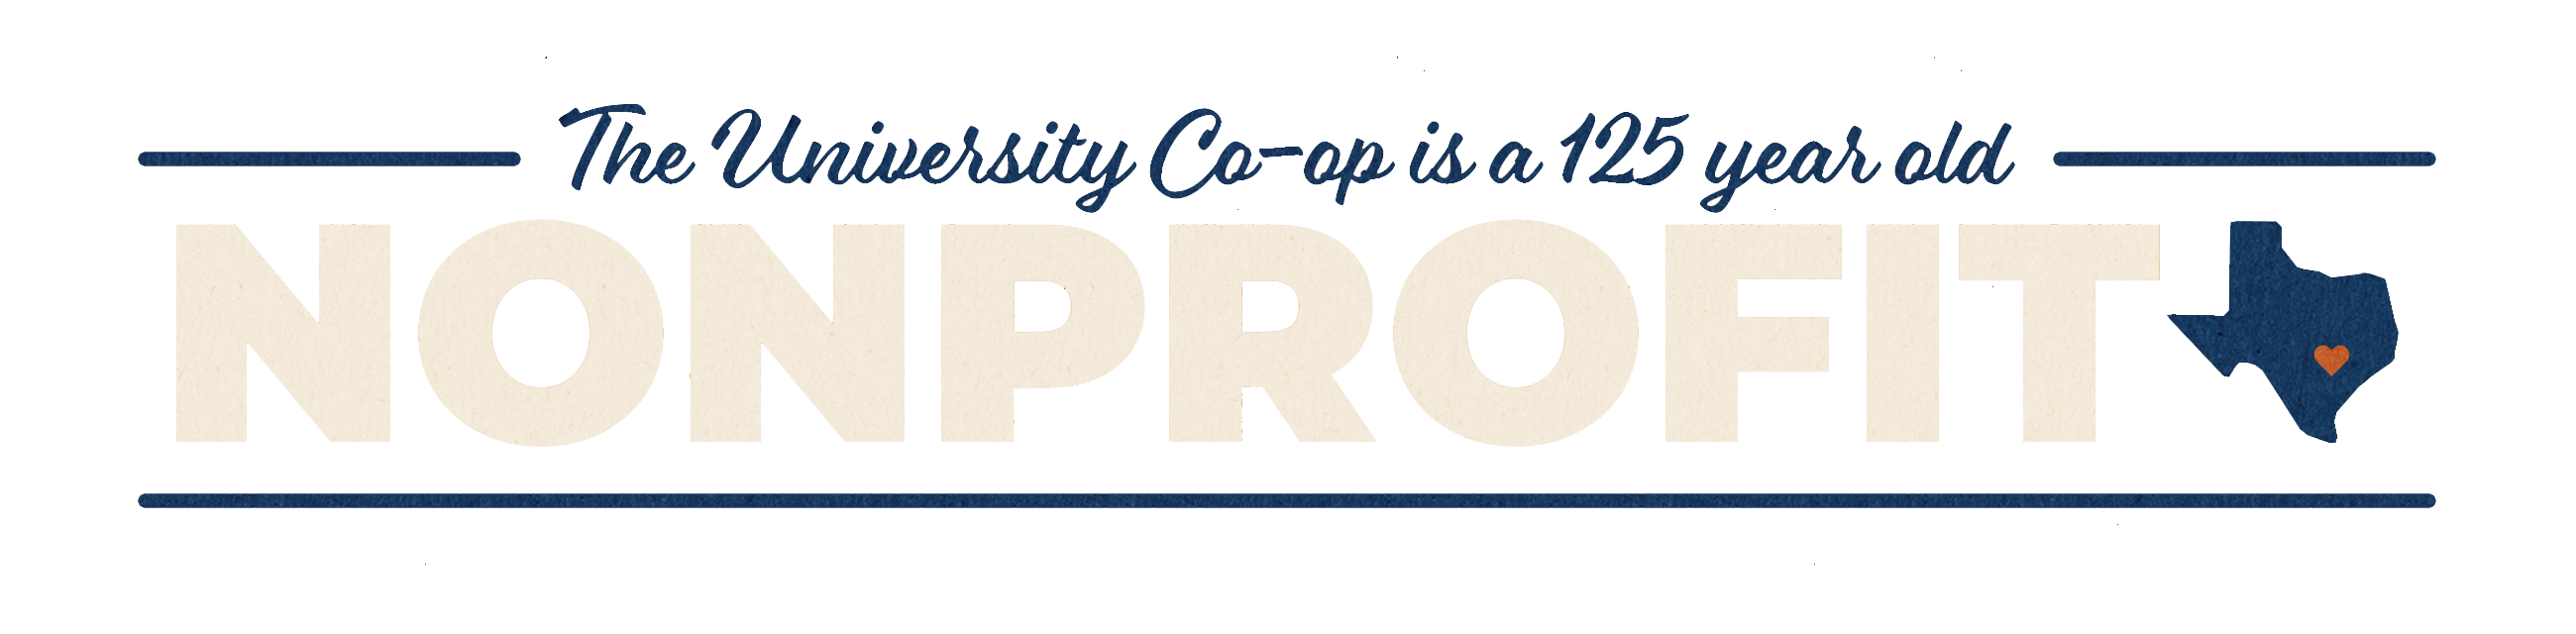 The University Co-op is a 125 year old NONPROFIT!